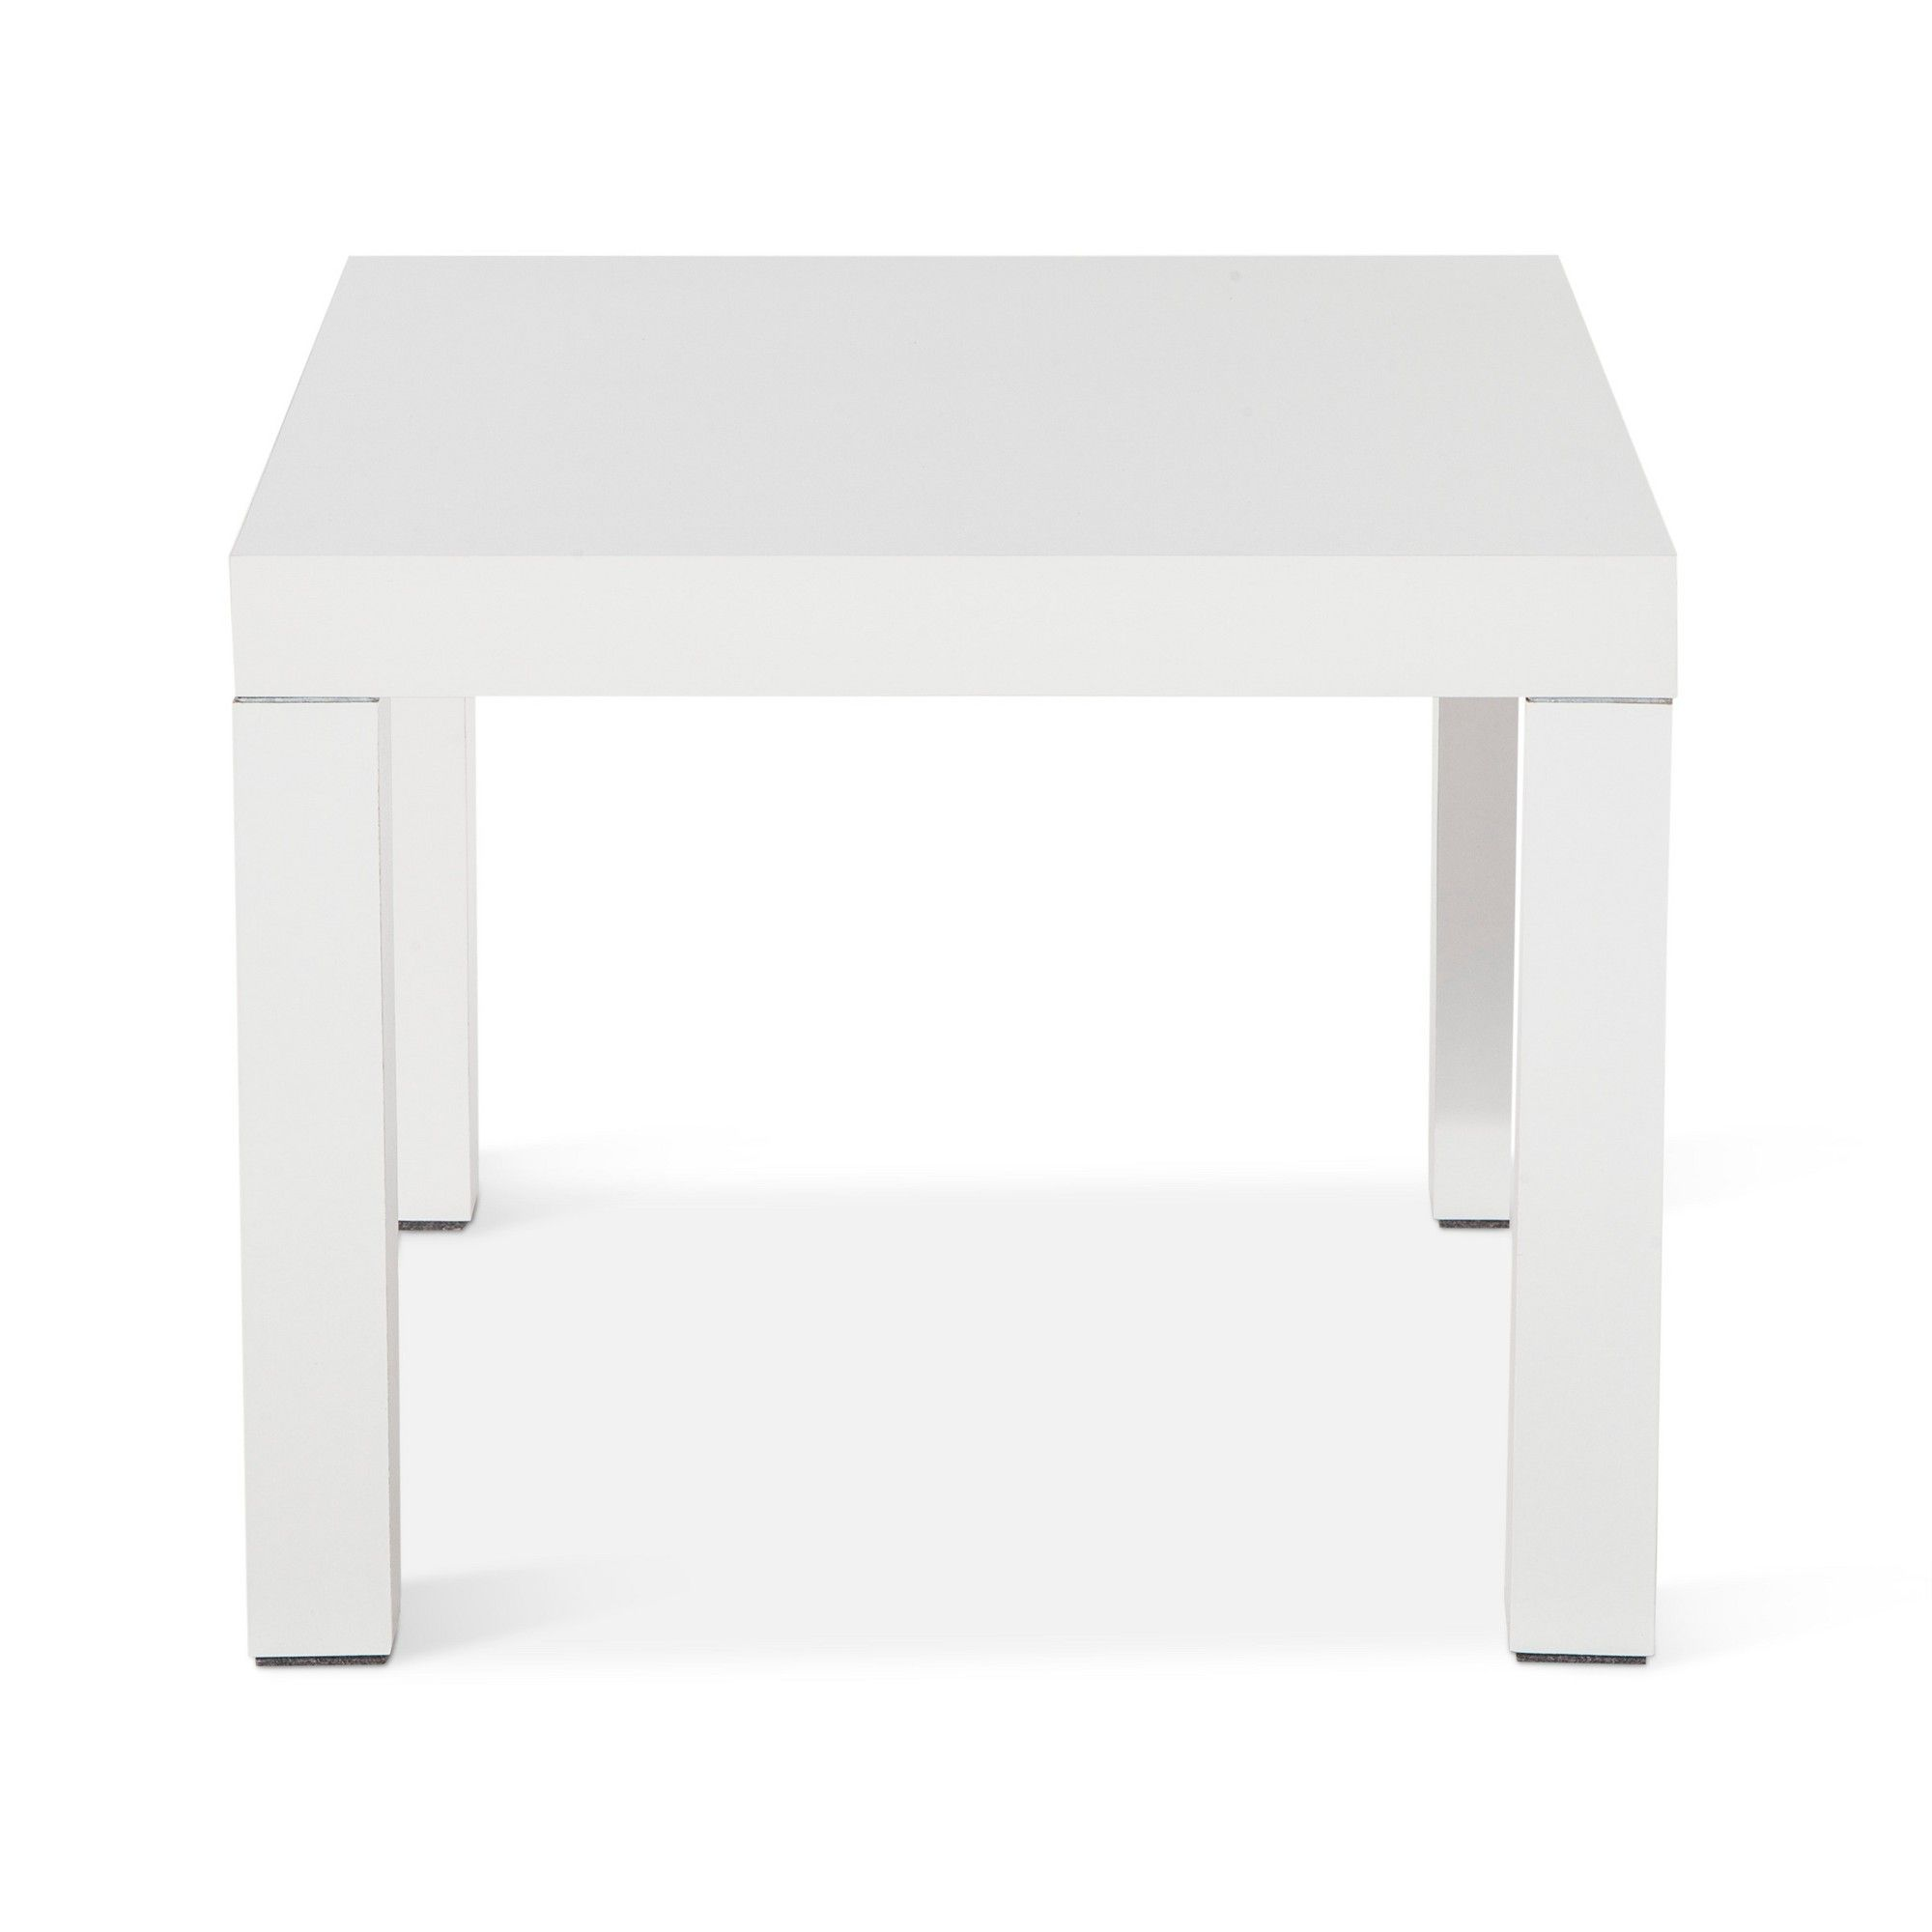 tools accent table white room essentials products hobby lobby outdoor furniture solid wood entry home decor centerpiece wagon coffee ikea kitchen chairs silver drum pottery barn